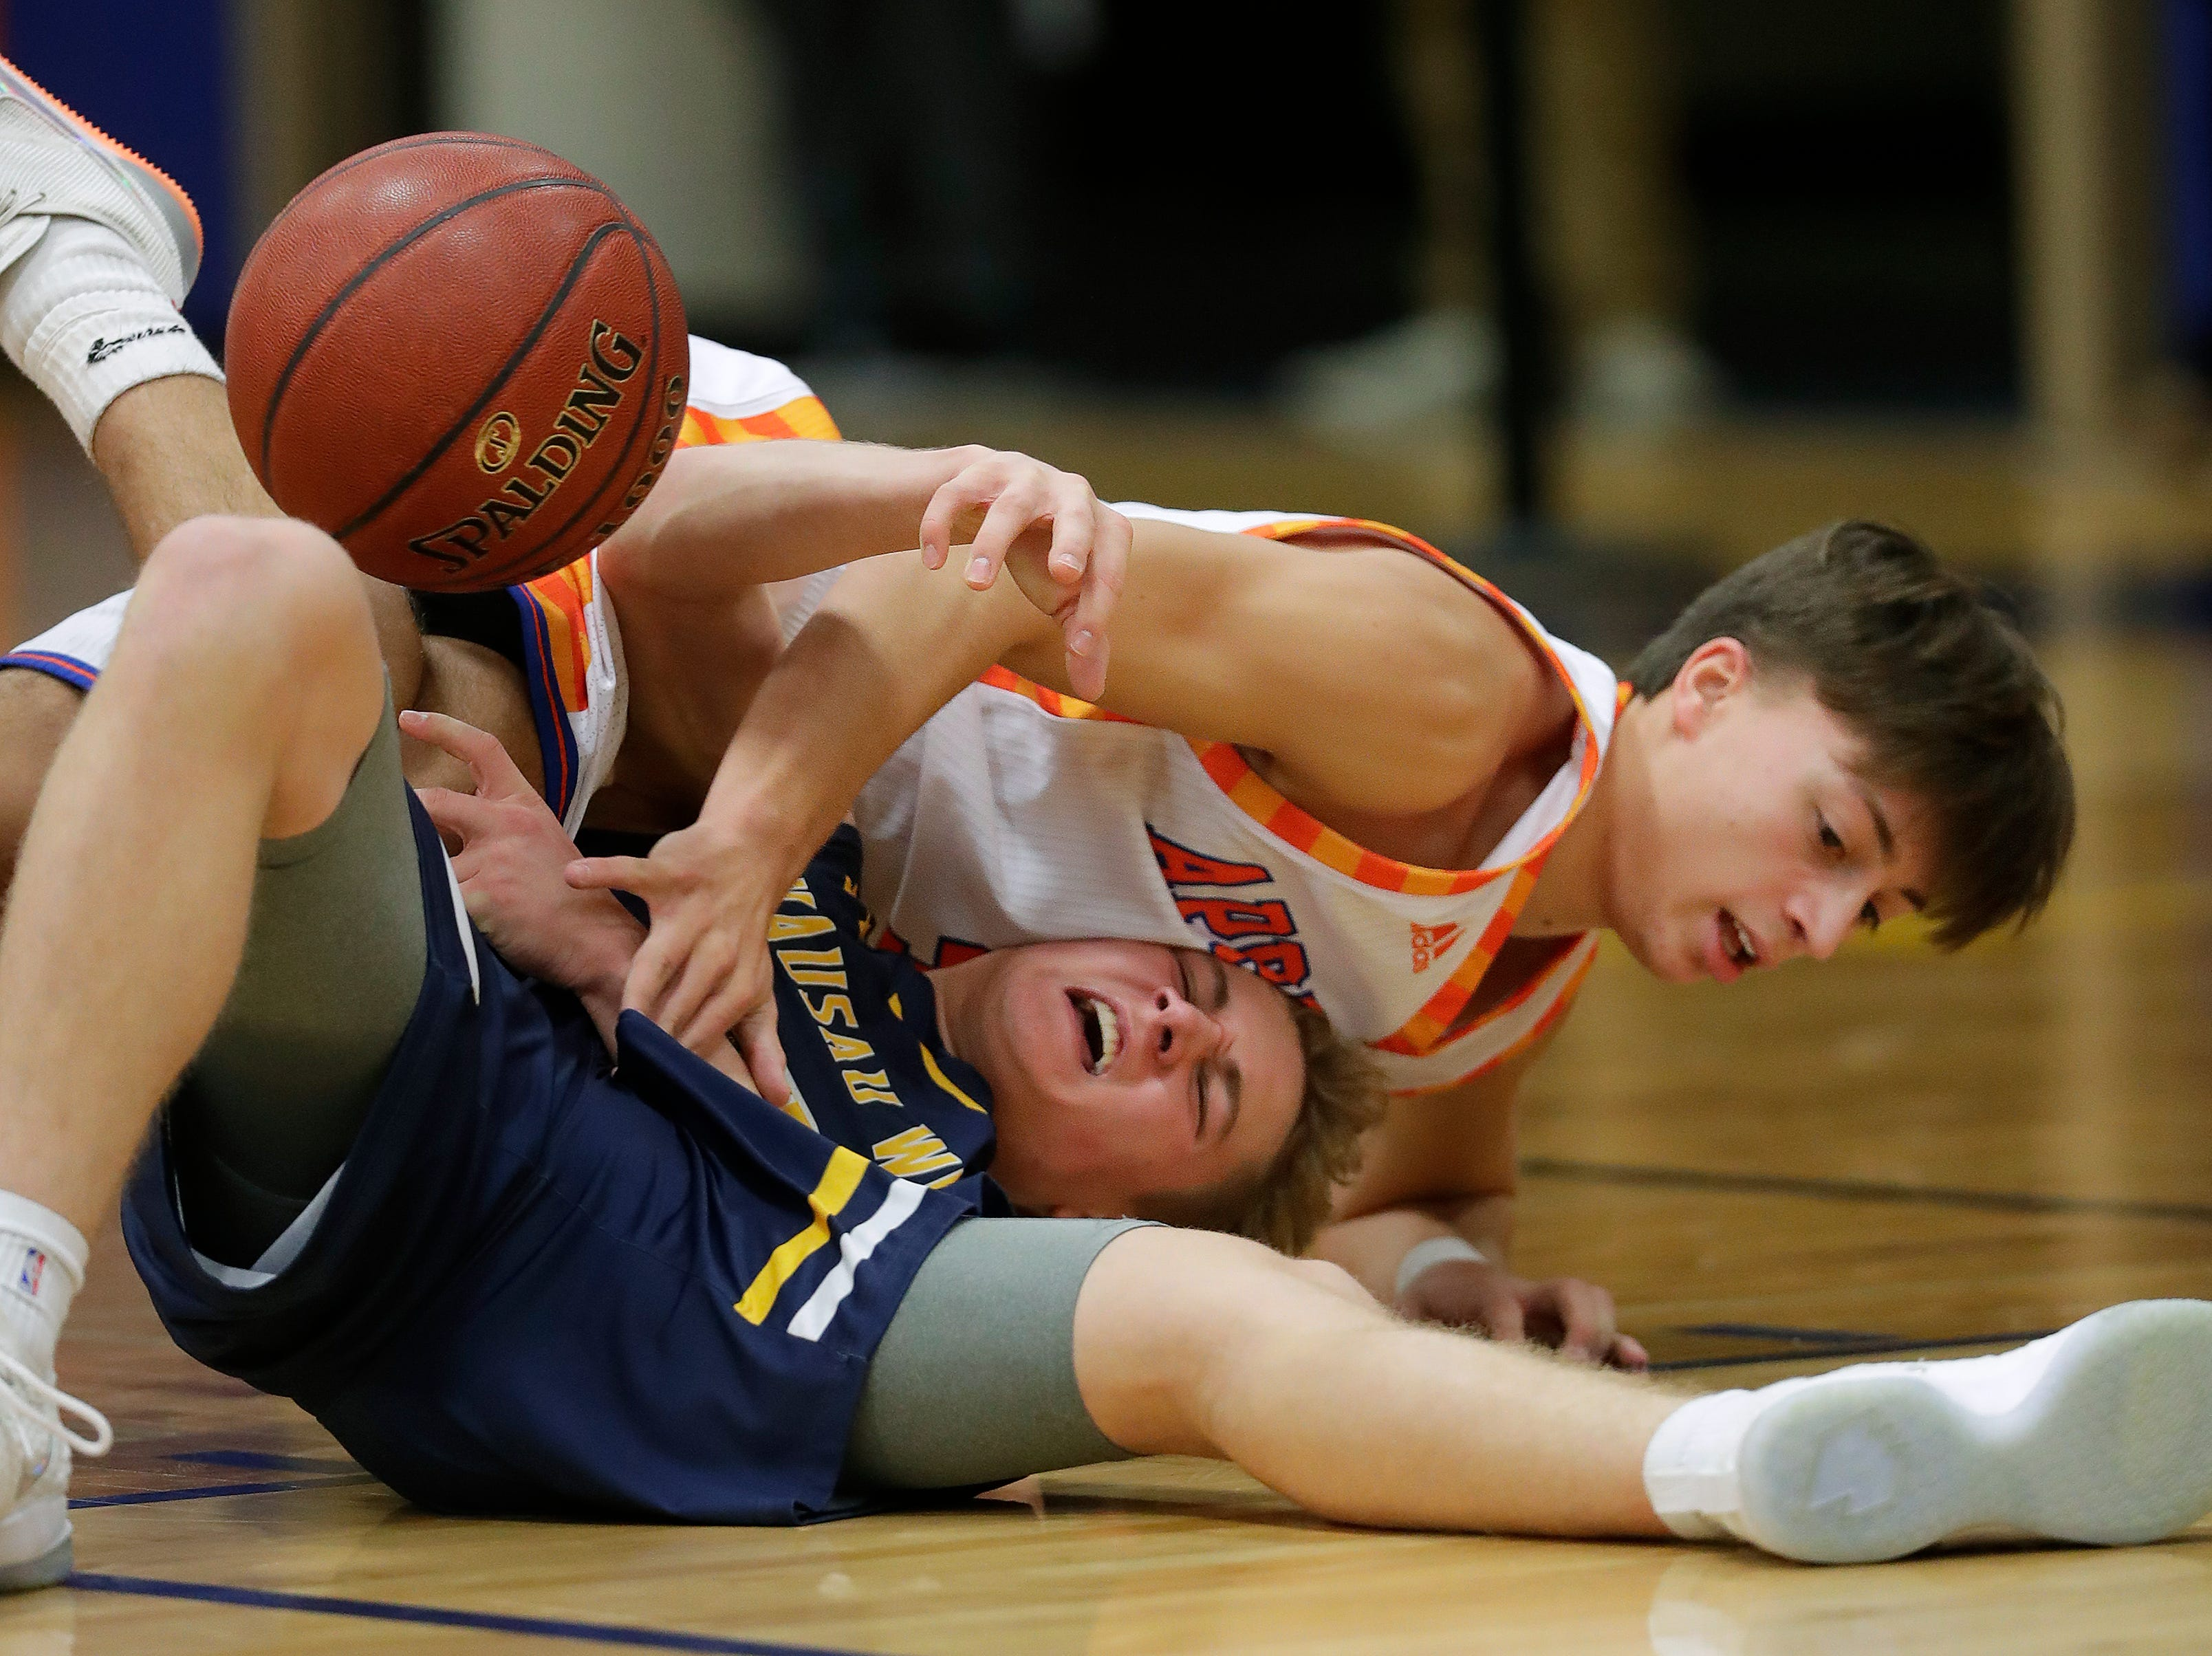 Appleton West  High School's Eli Vogel, top, battles for a loose ball against Wausau West High School's Mitchell Zahurones during their boys basketball game Friday, December 28, 2018, in Appleton, Wis. 